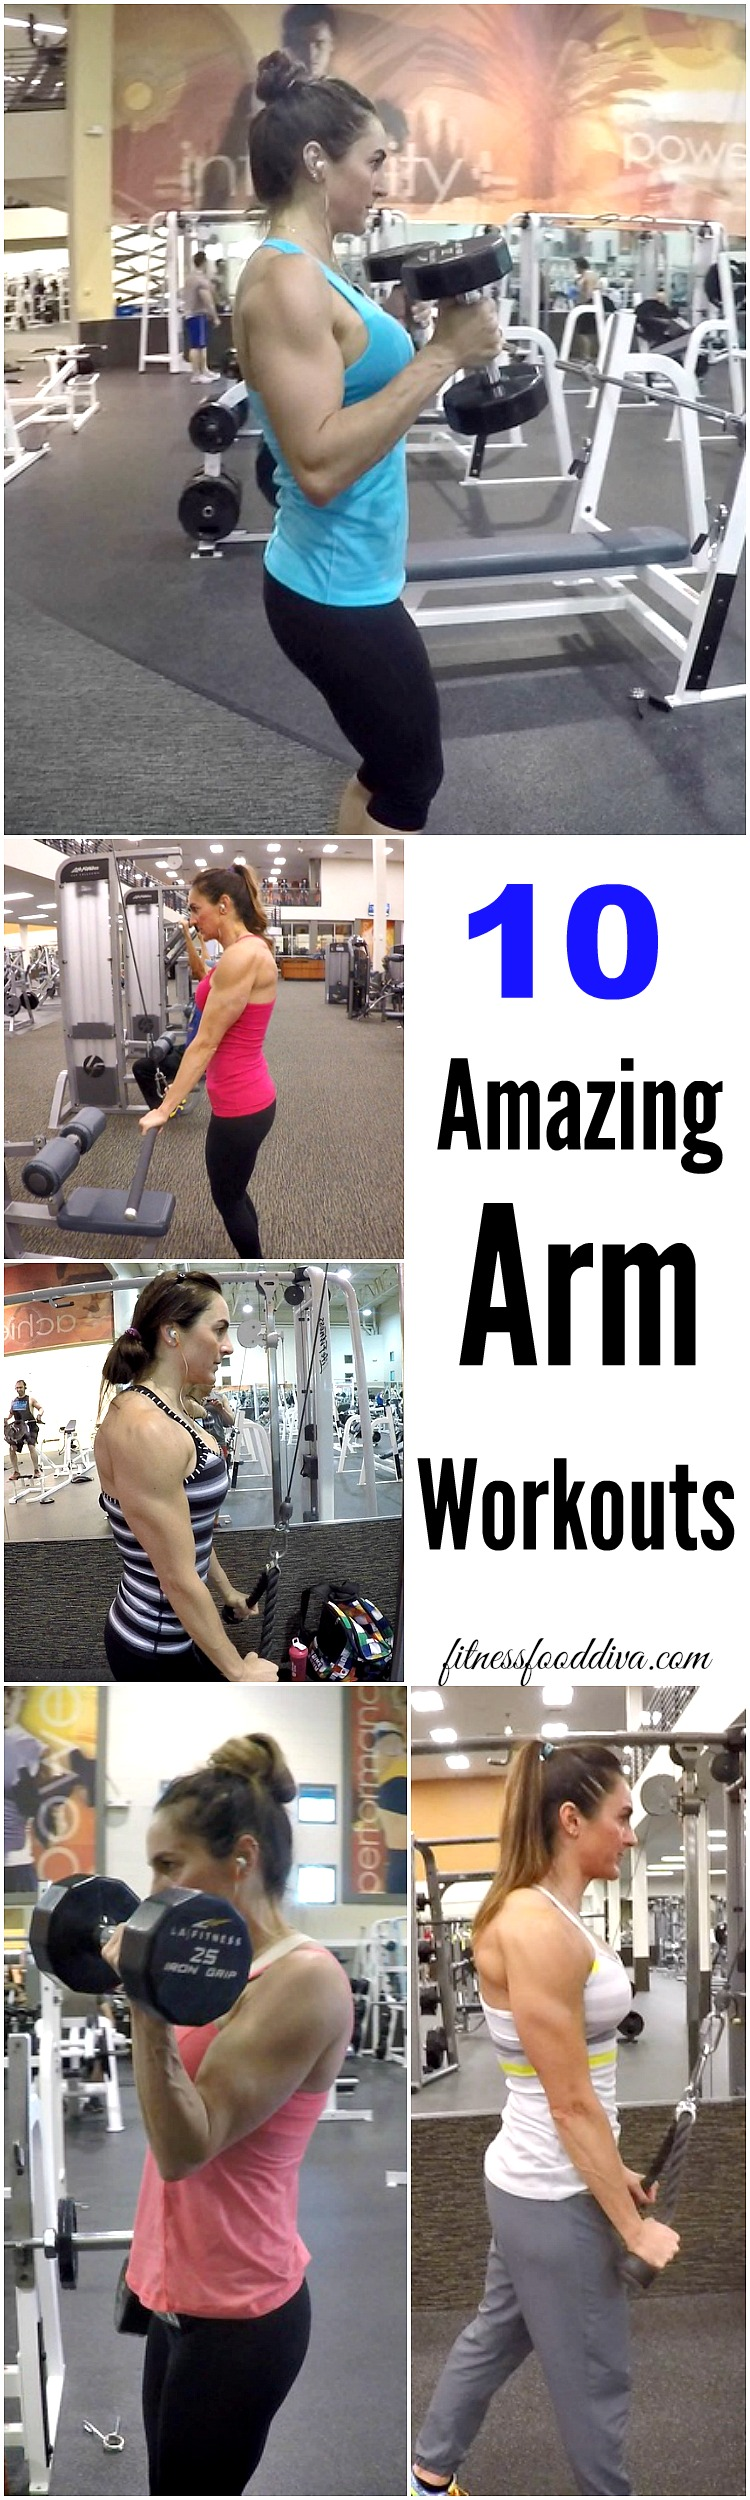 10_amazing_arm_workouts